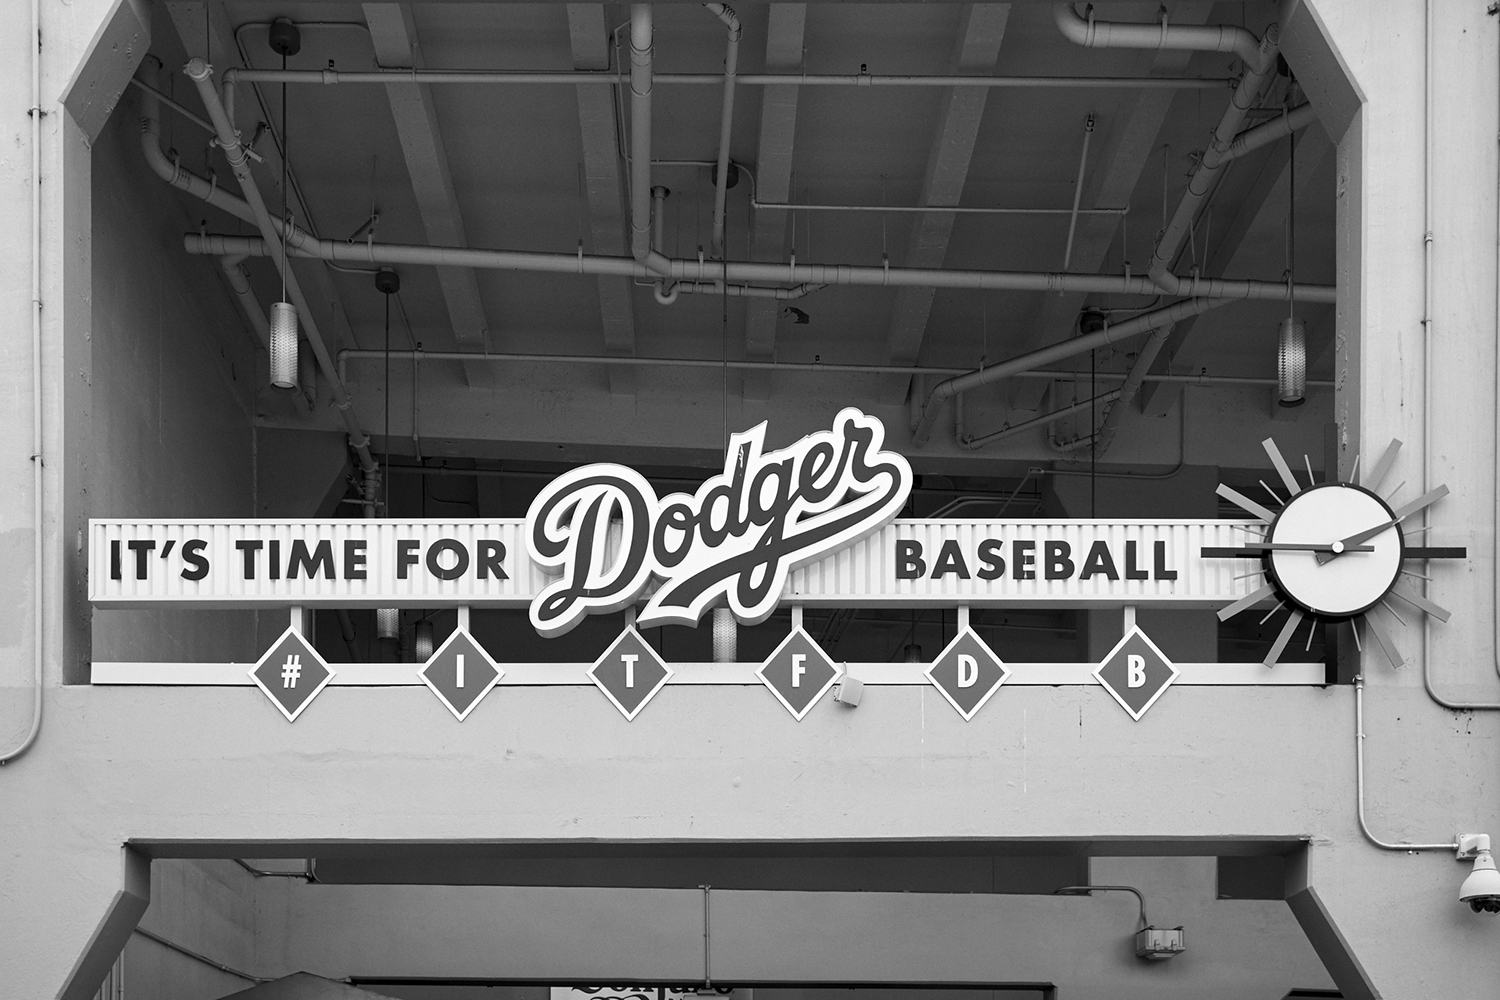 kyle_ellis_photography_dodgers_baseball_0966.jpg